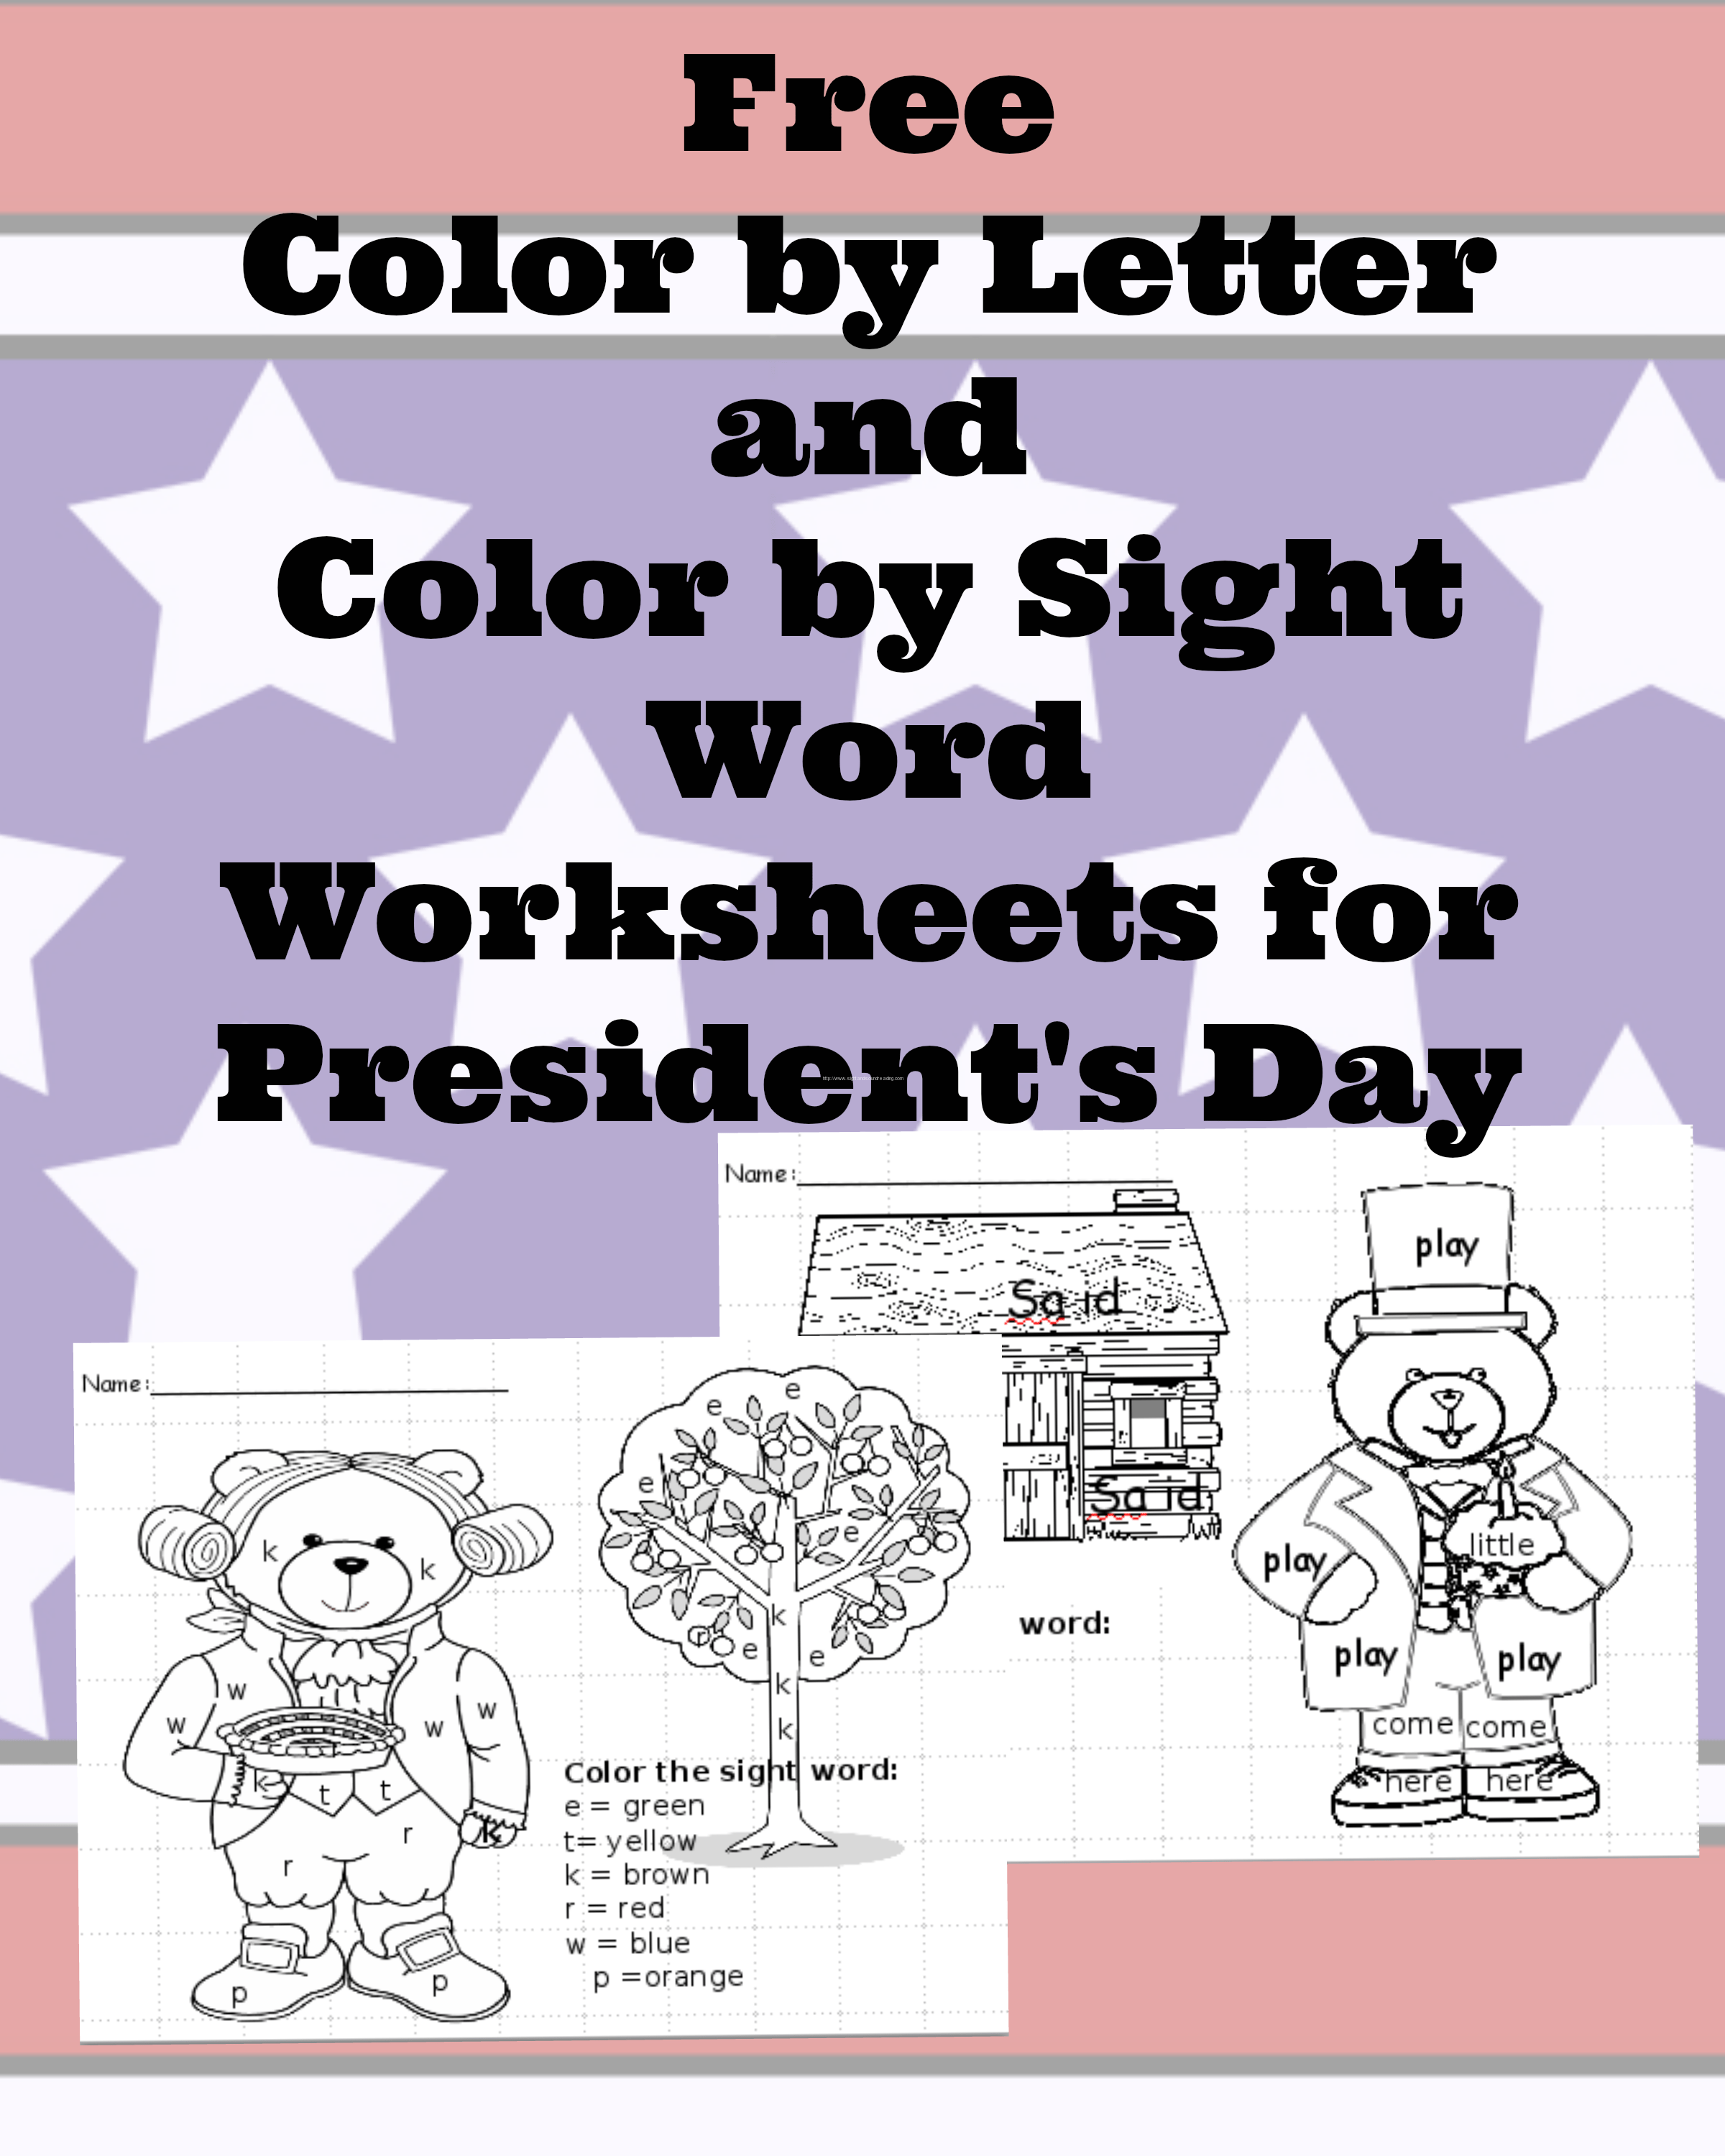 Presitents Worksheet